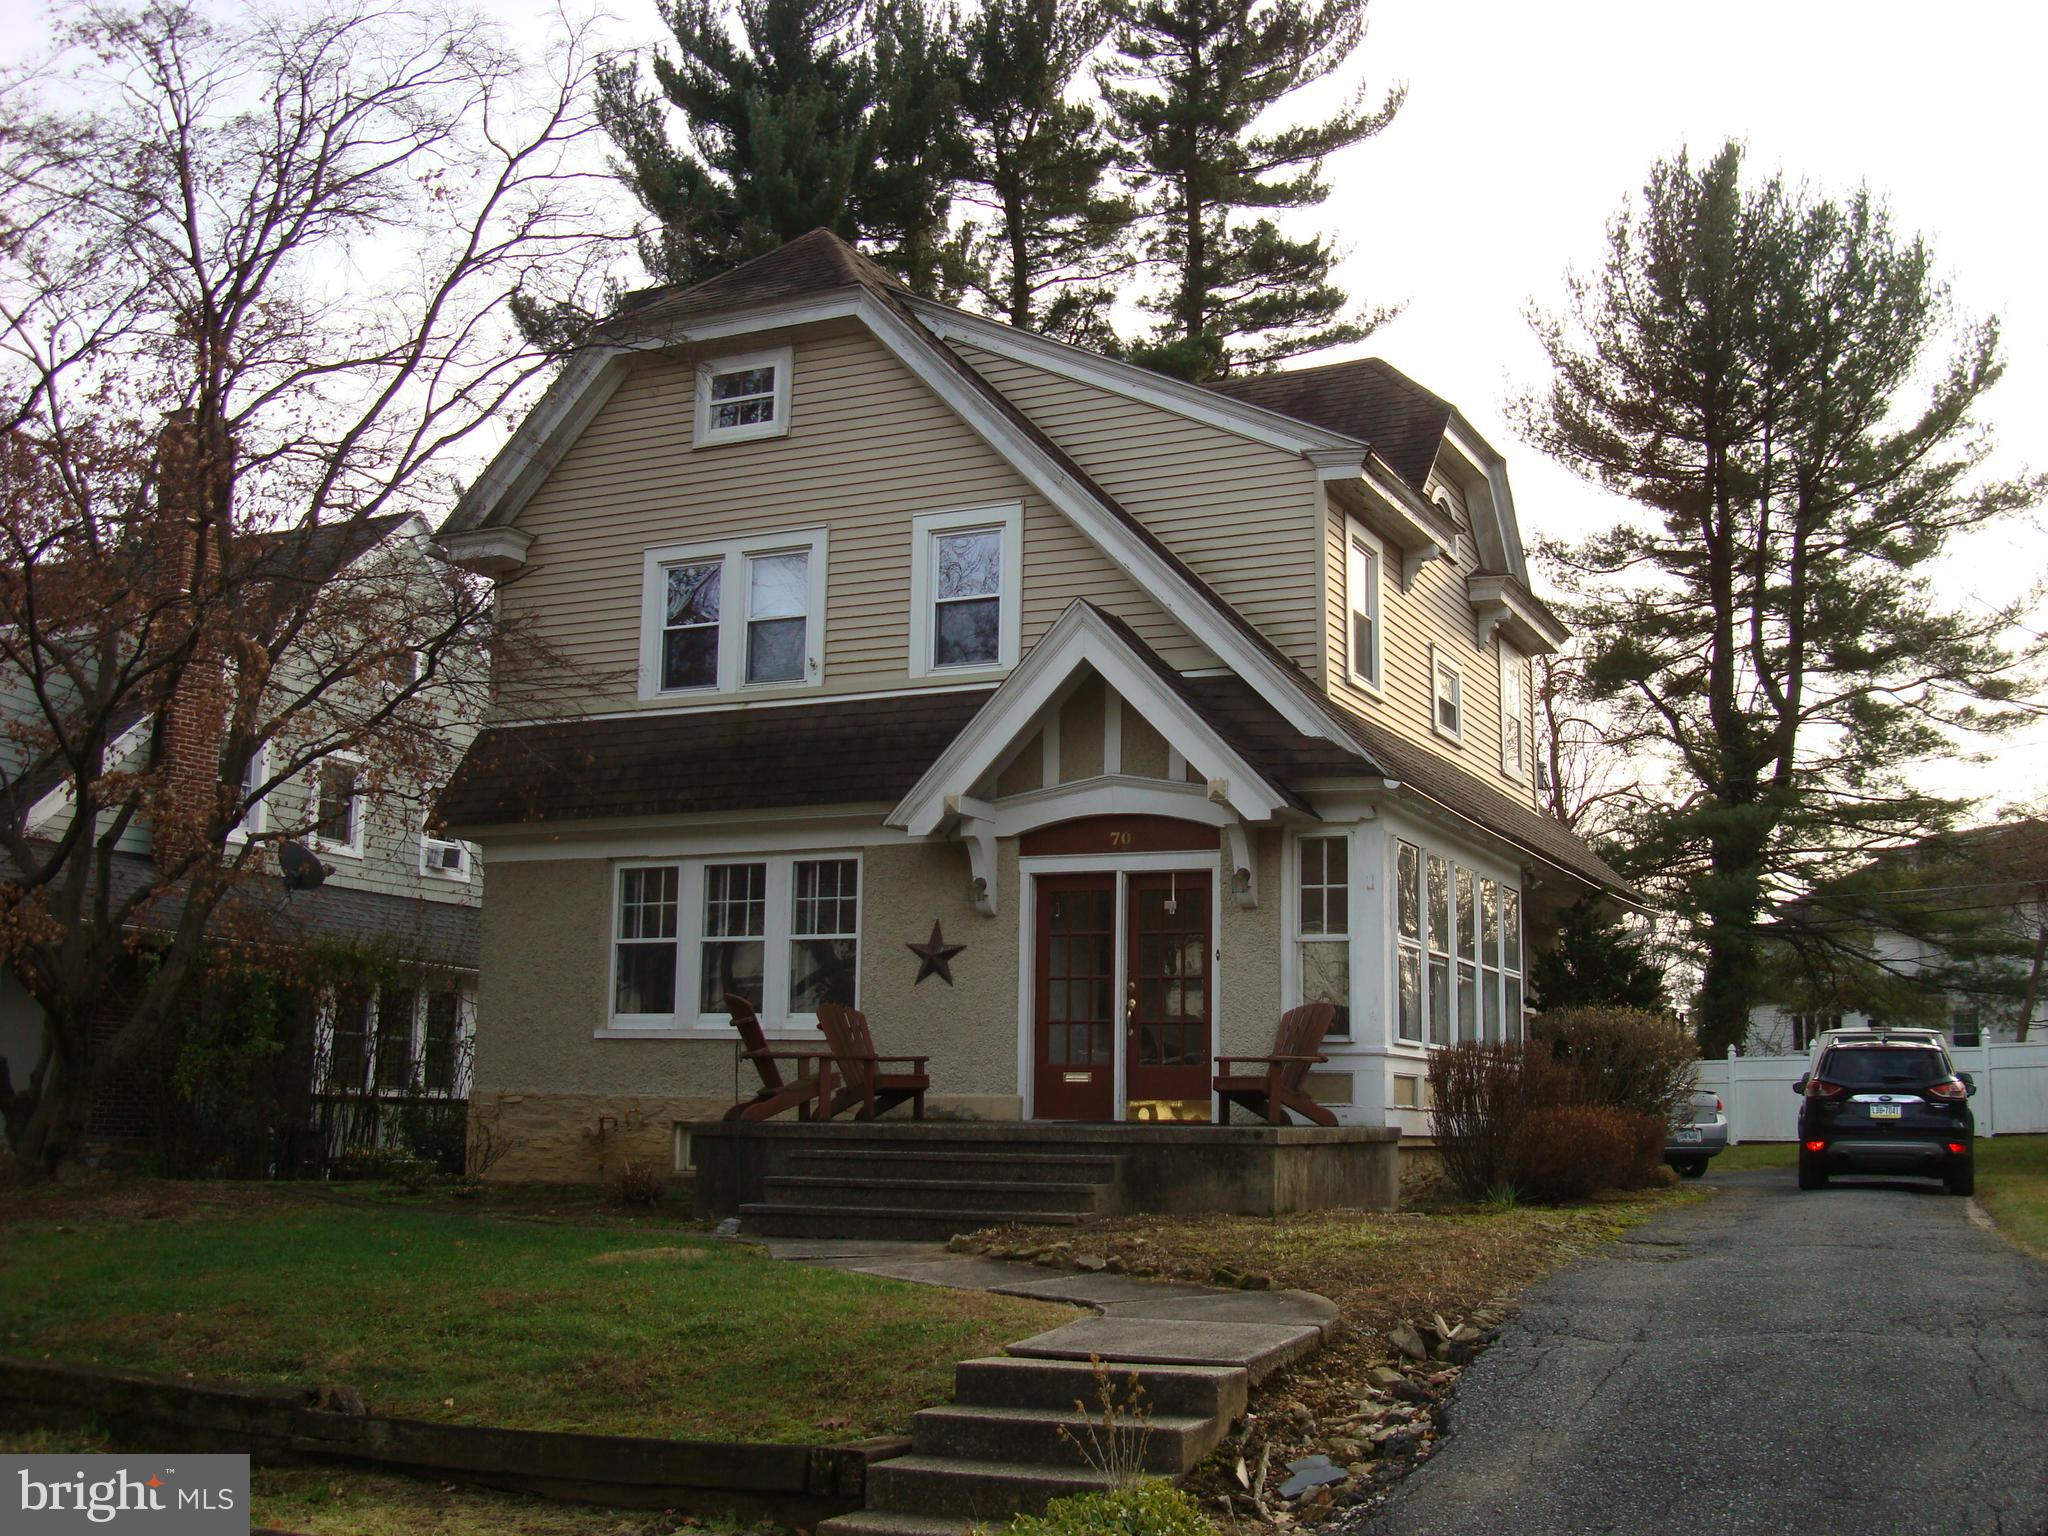 70 PARK ROAD, READING, PA 19609